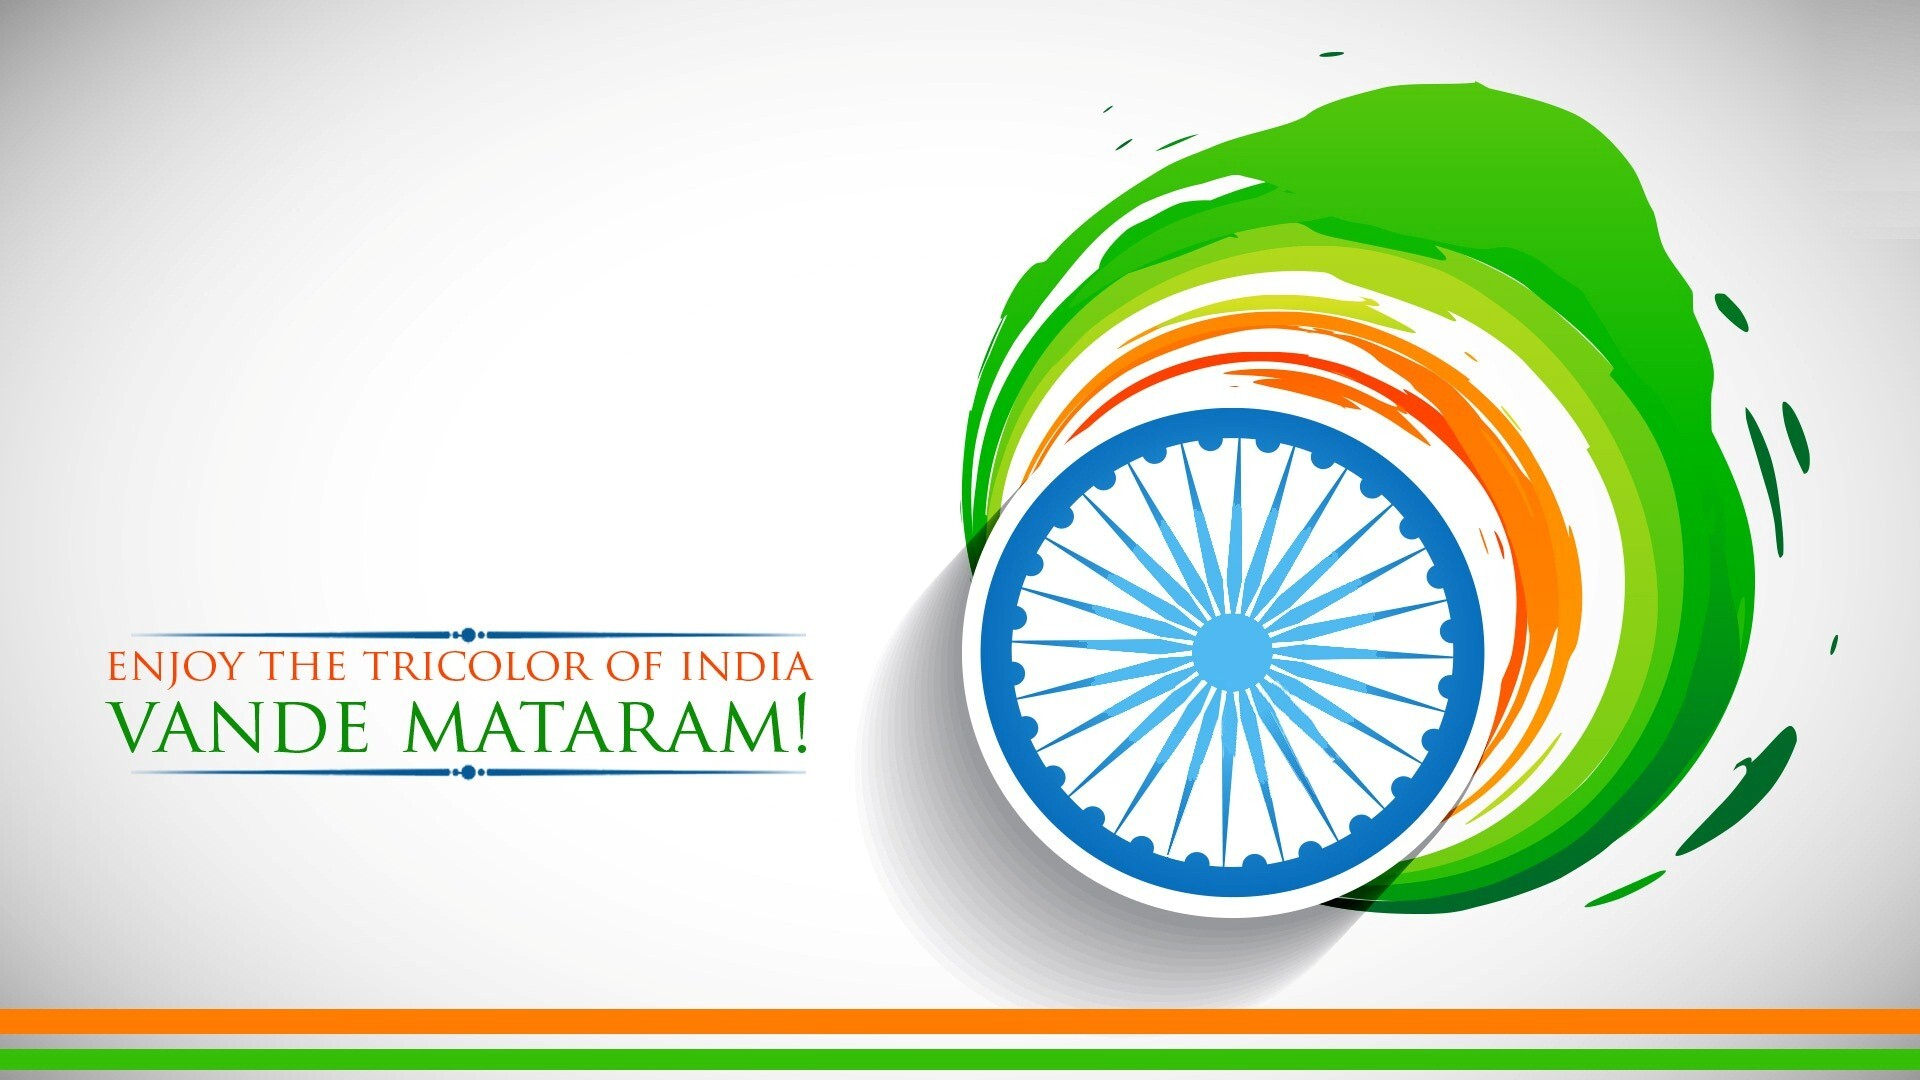 15th August Happy Independence Day Of India Wishes Wallpaper Hd